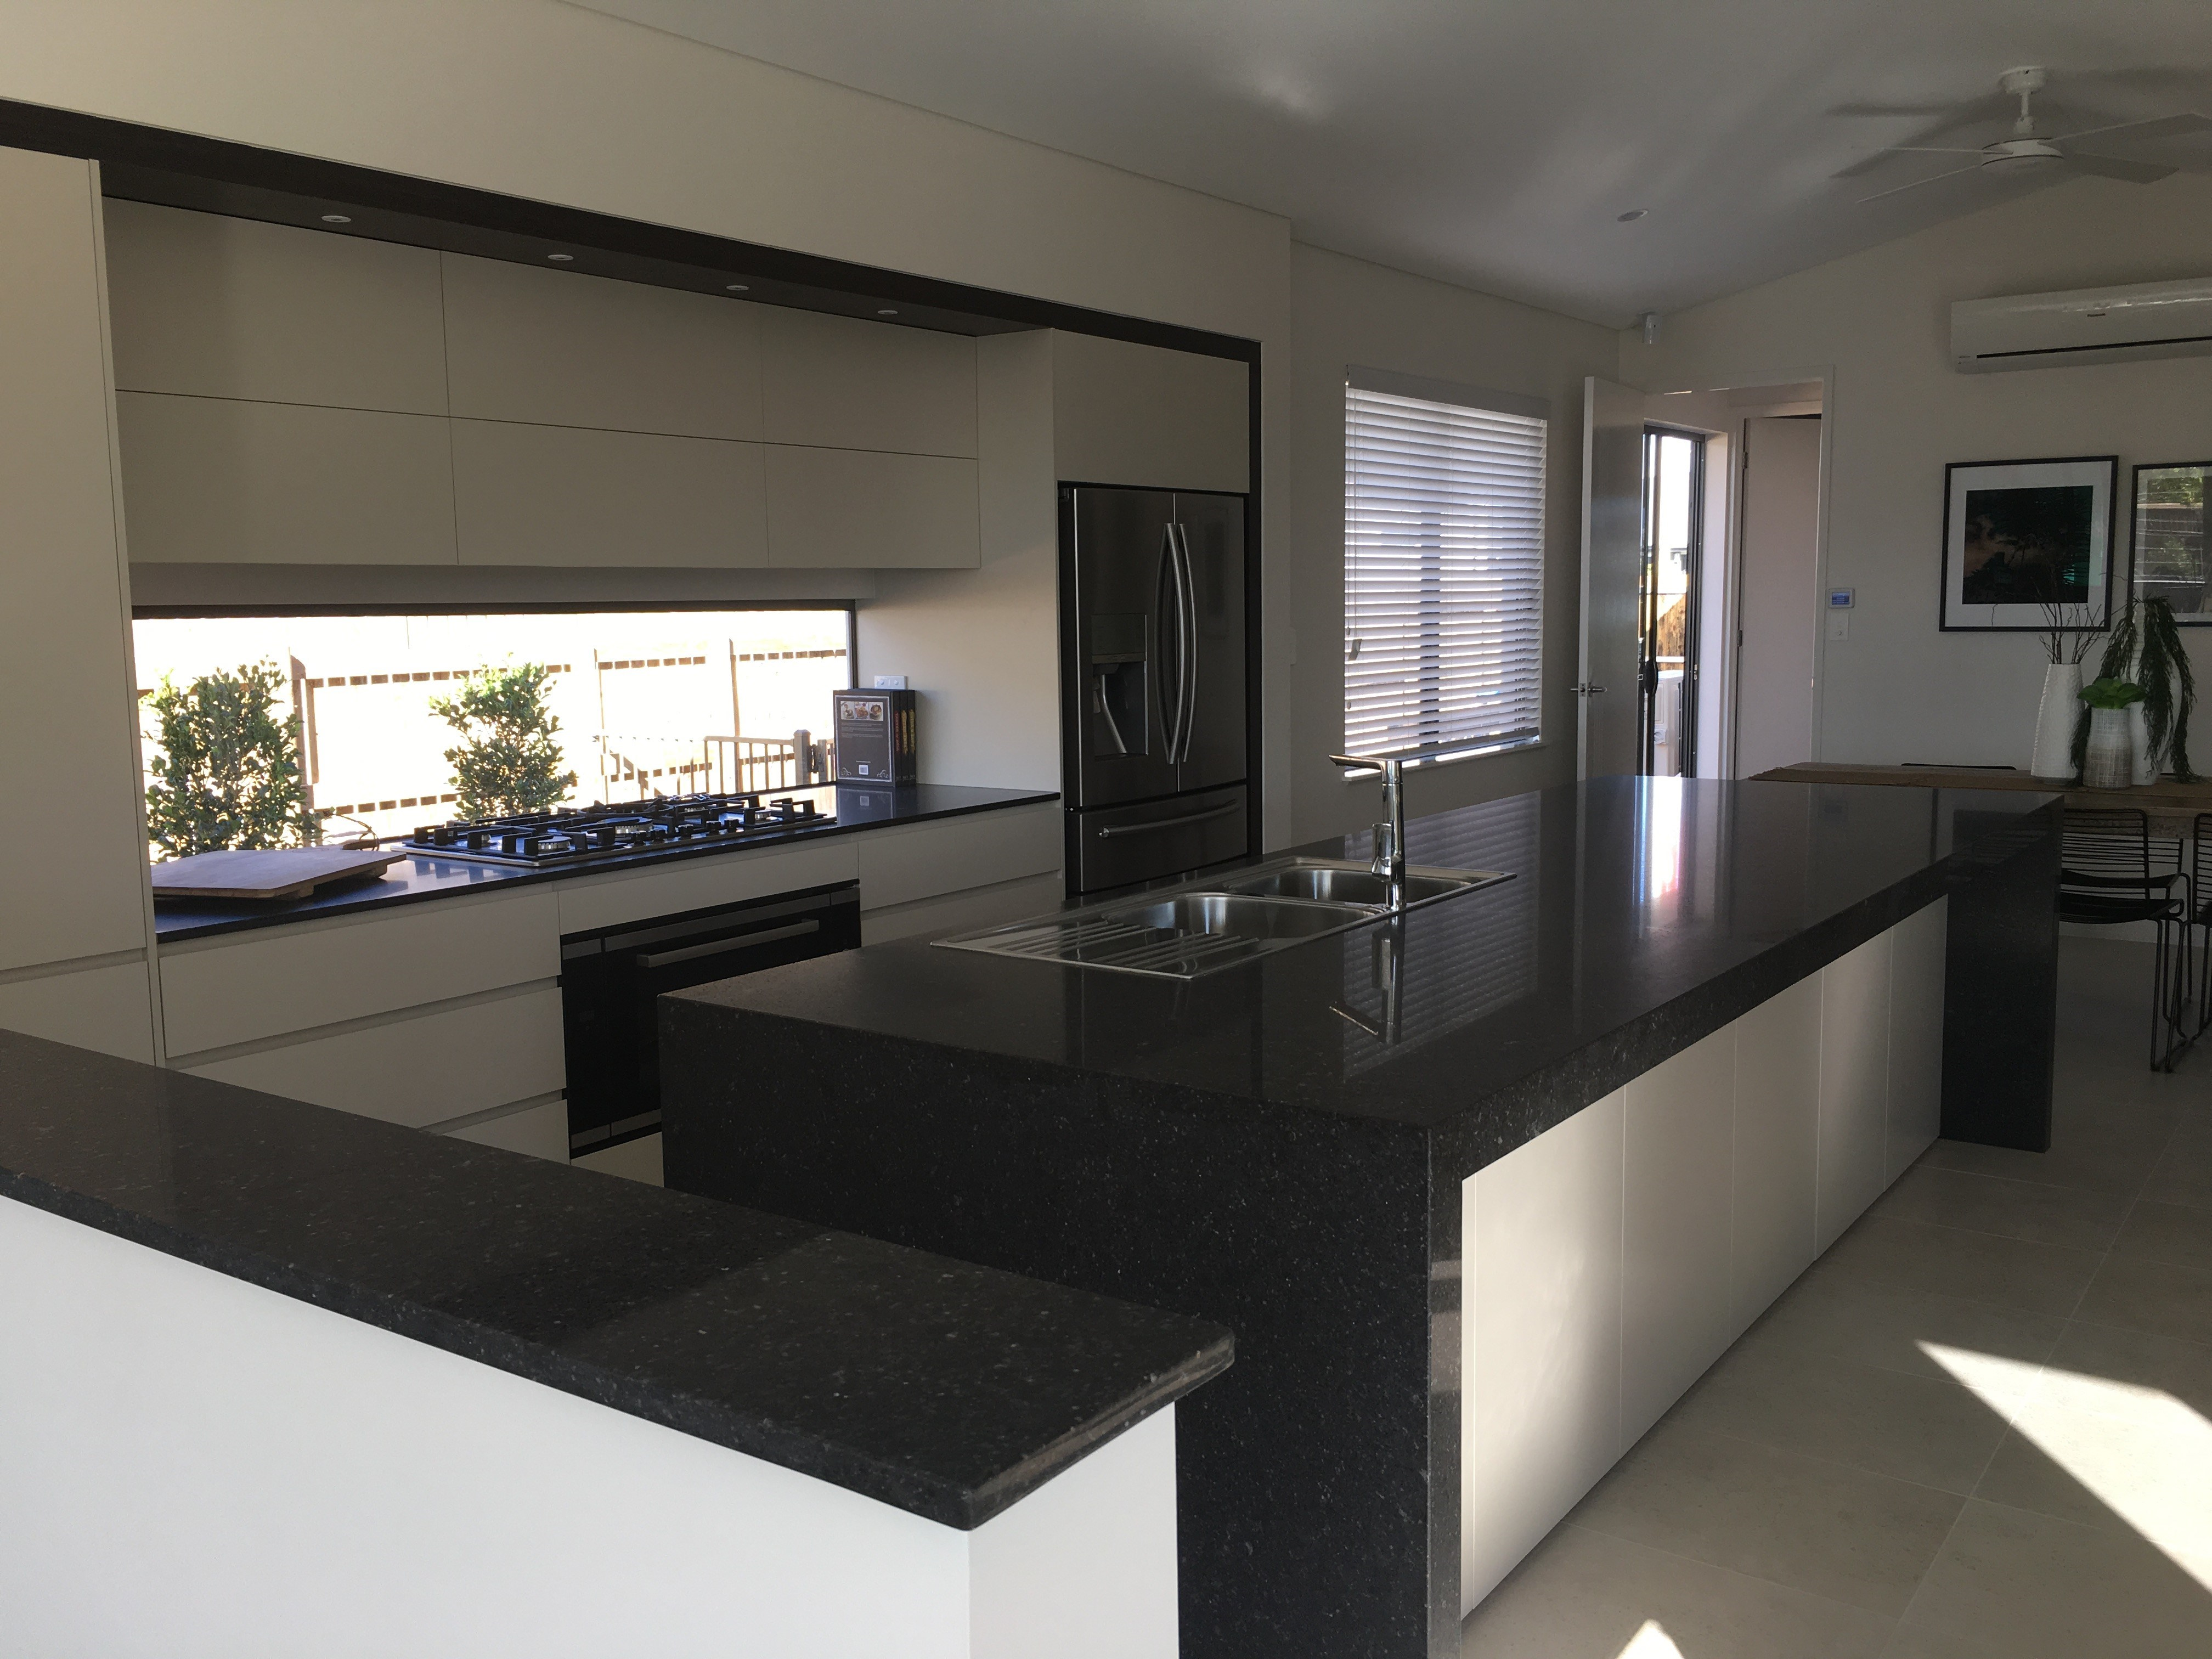 Kitchen tops to display home for Couger Homes